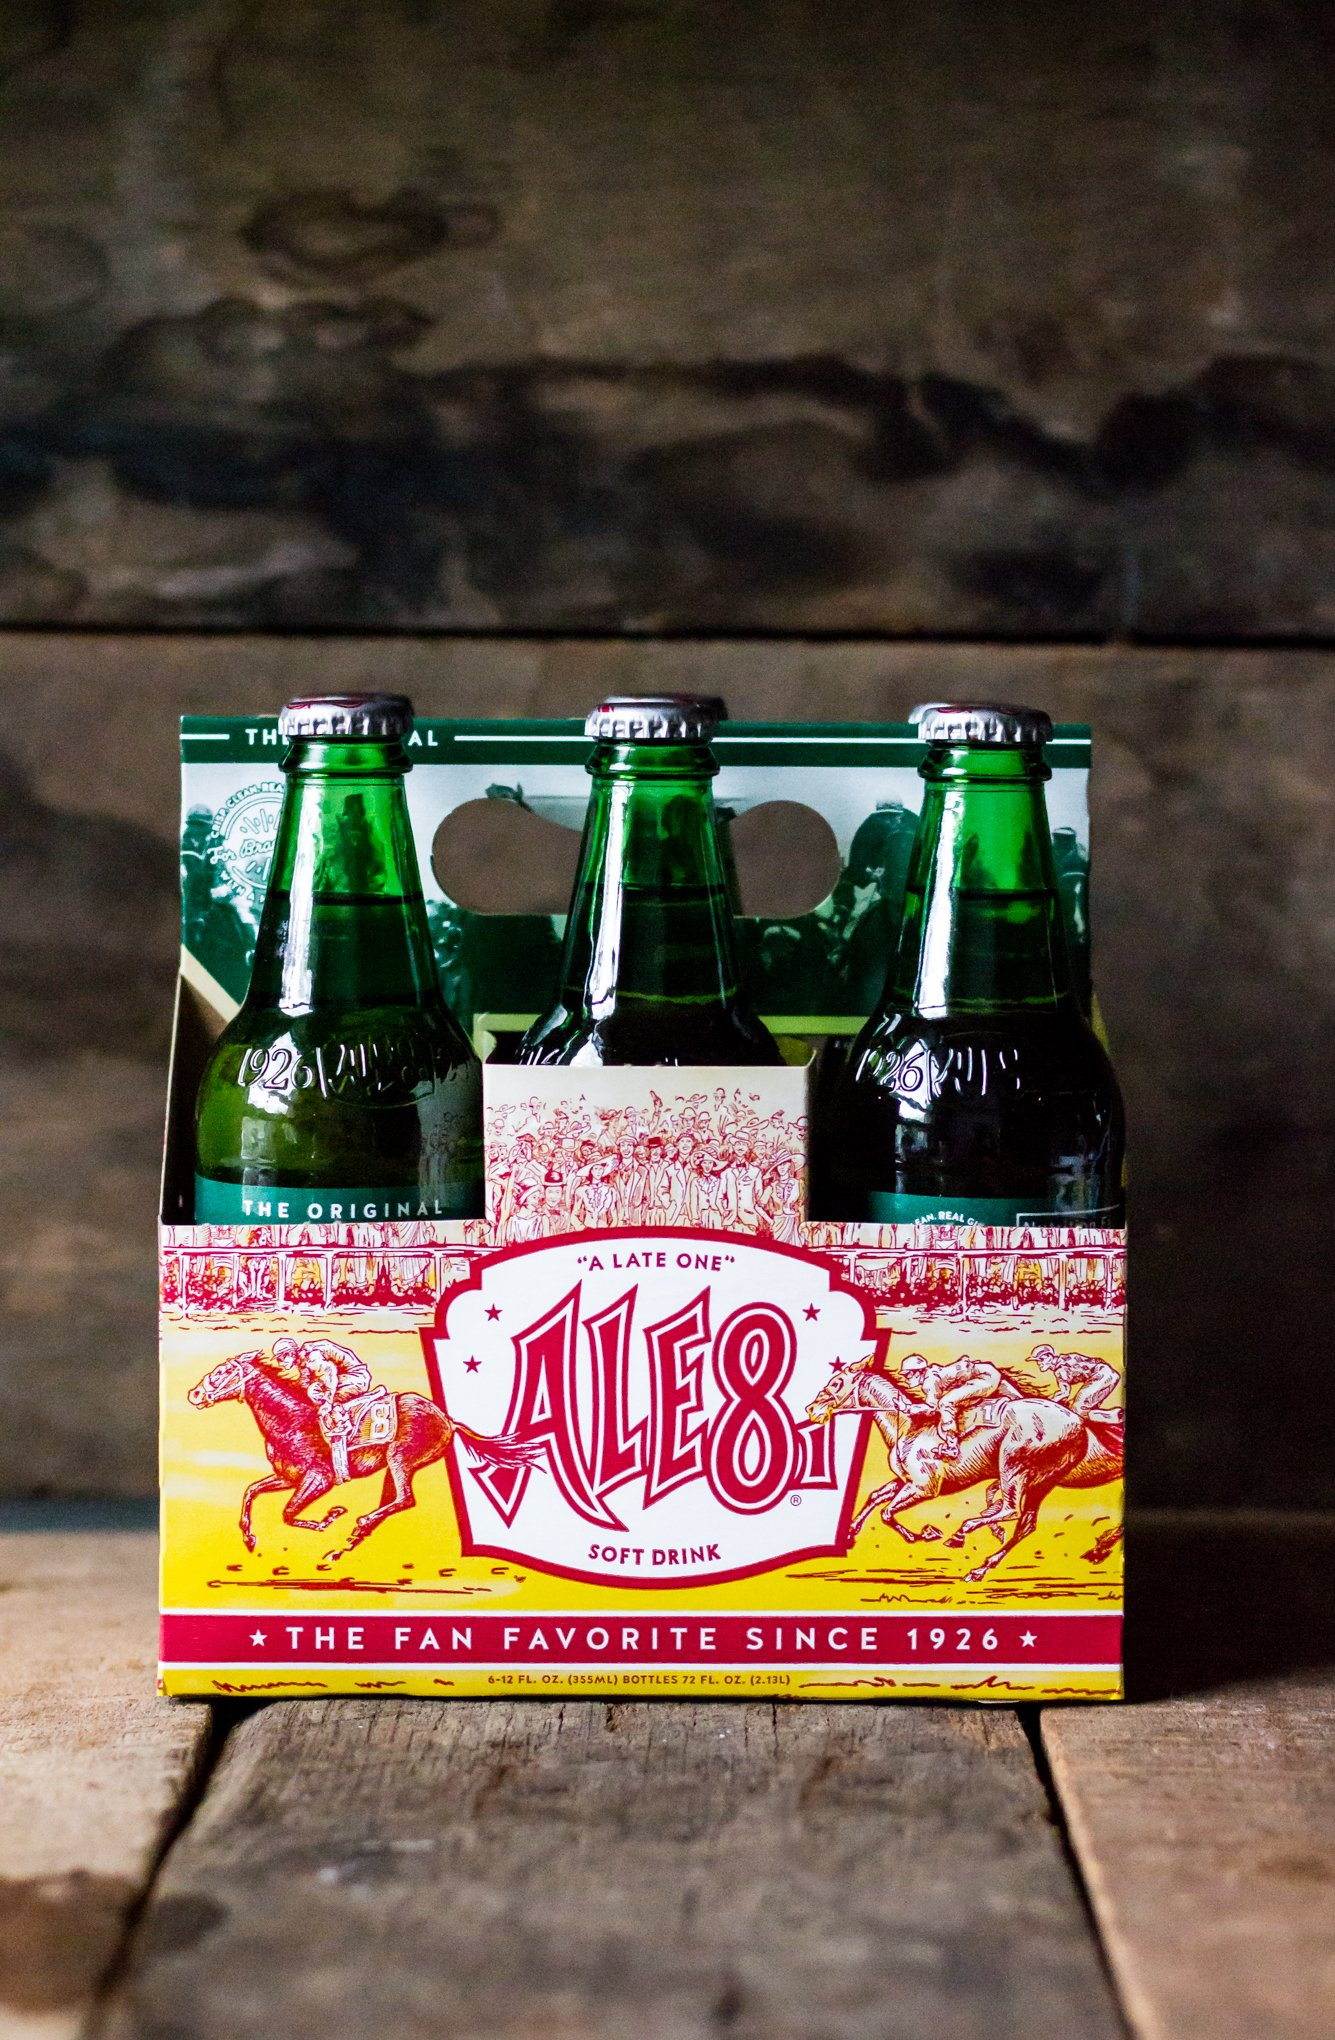 ale8one, jubli8, derby cocktails, the kentucky gent, the kentucky derby